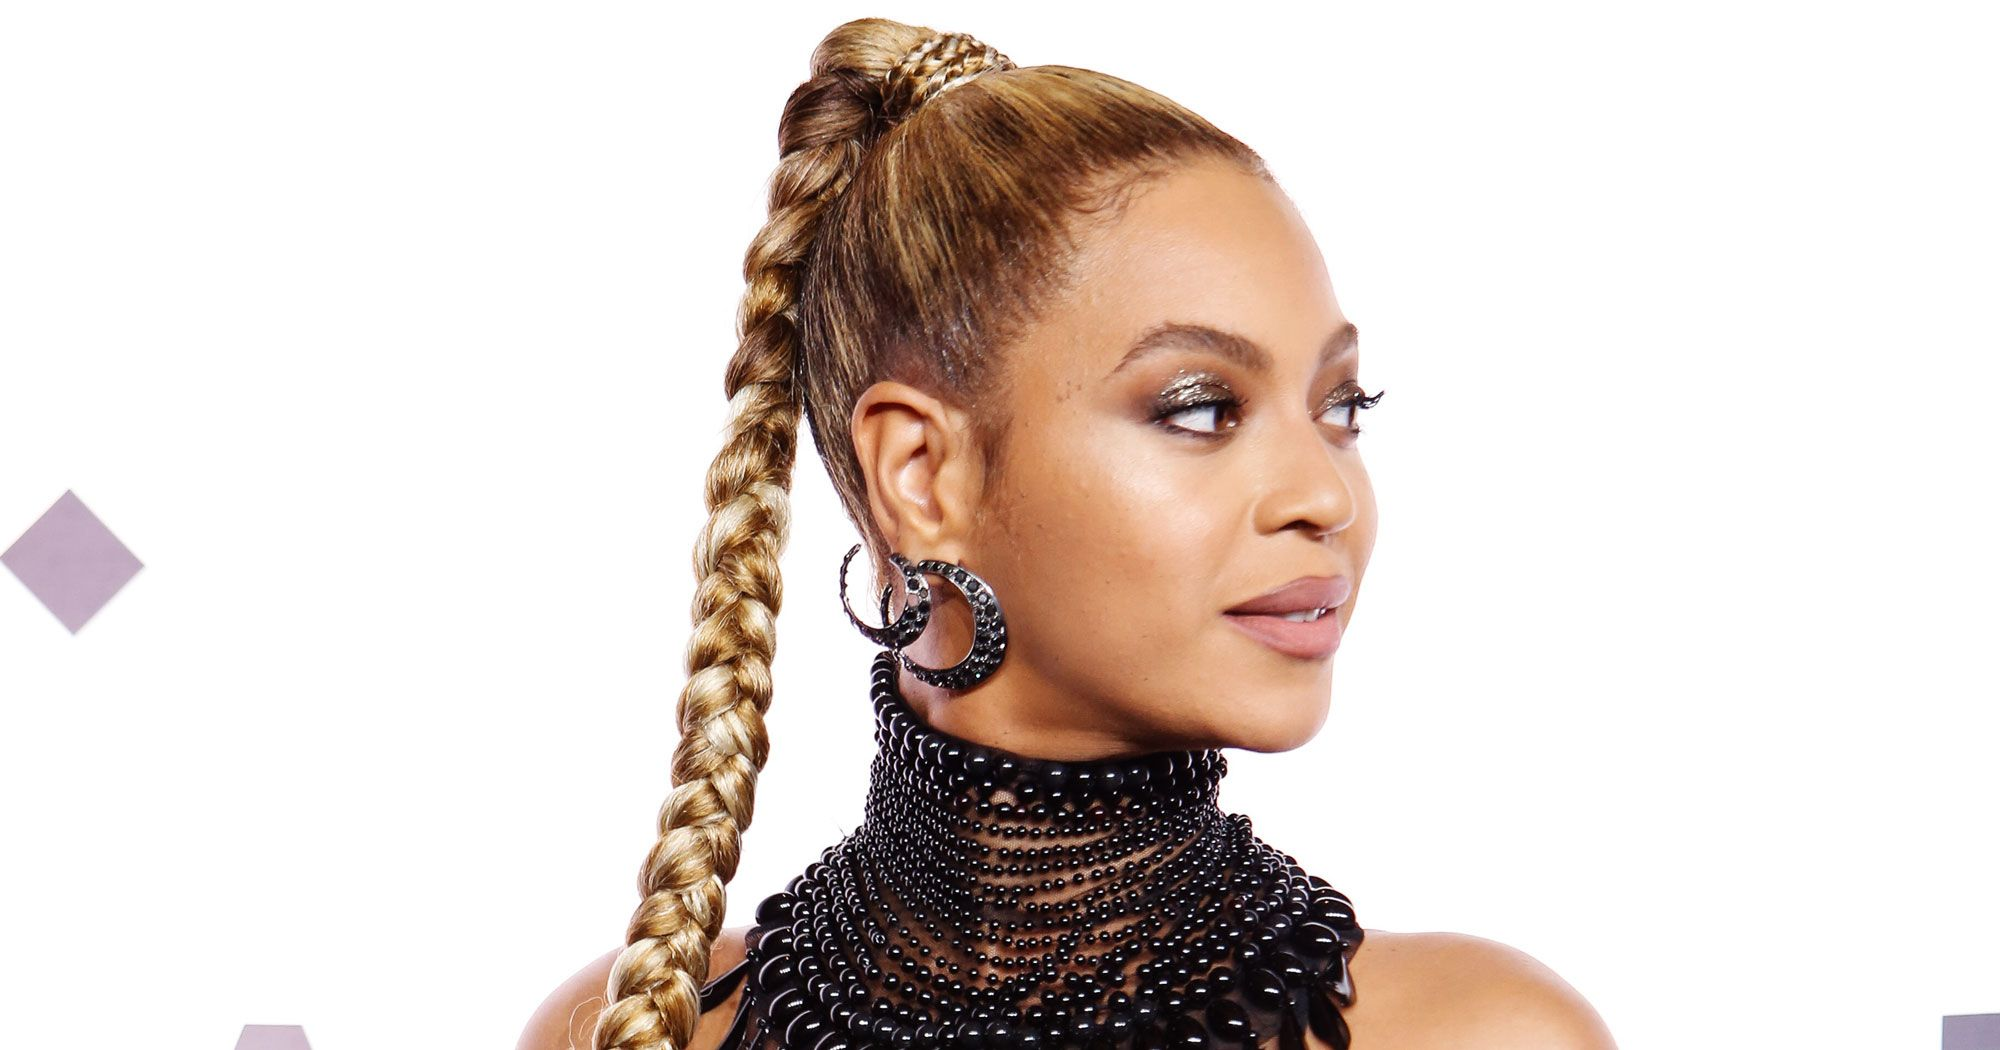 On Beyonce's Beauty – 10 Hair Styling Inspiration from The Queen B!